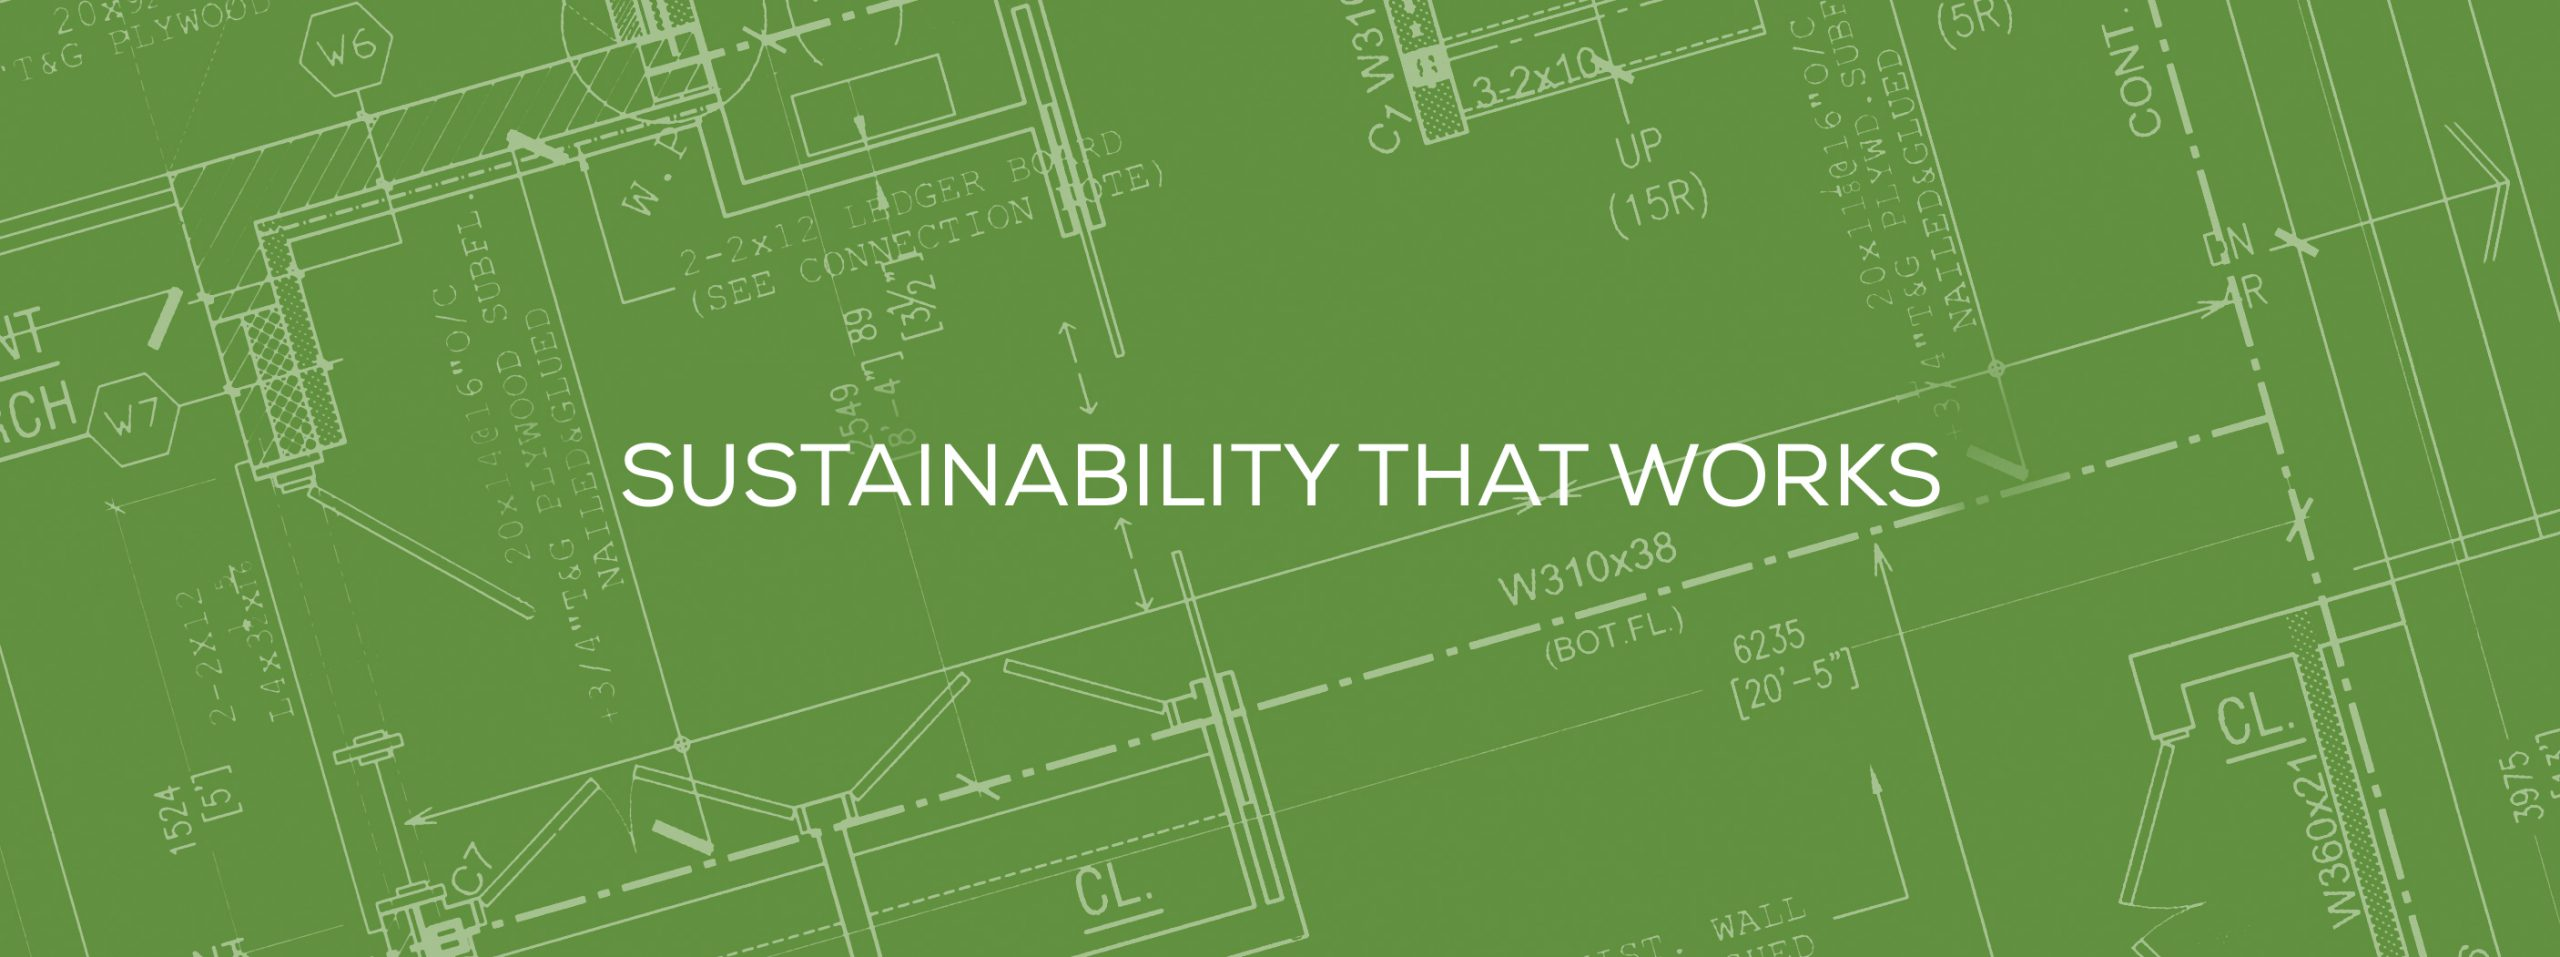 sustainability that works